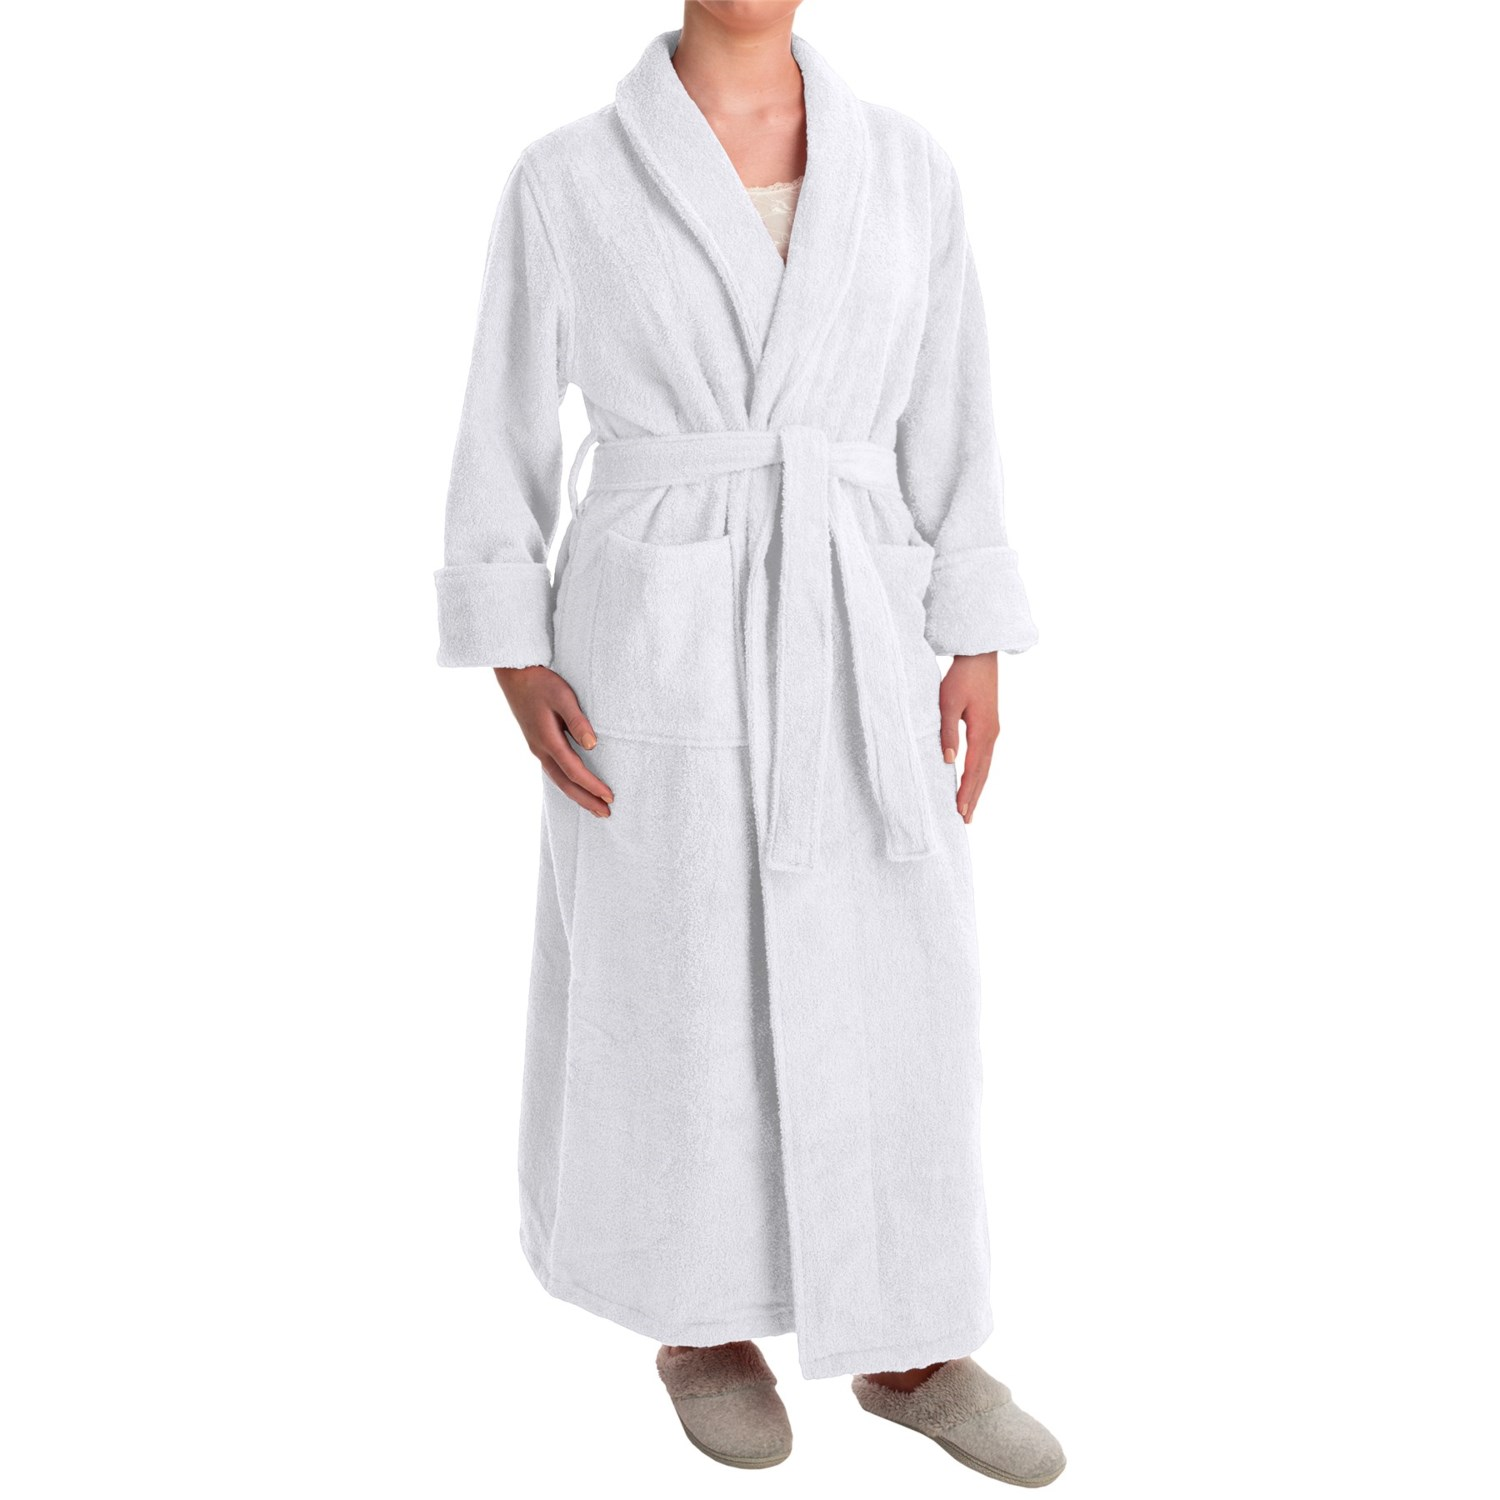 Women's Cotton Terrycloth Bath Robe. Reviews. SALE. Related Searches: Womens Bath Robes Mens Bath Robes Turkish Cotton Bath Robes Unisex Bath Robes Cotton Bath Robes. Did you find what you were looking for? Yes No. If you need further help or information please visit our.